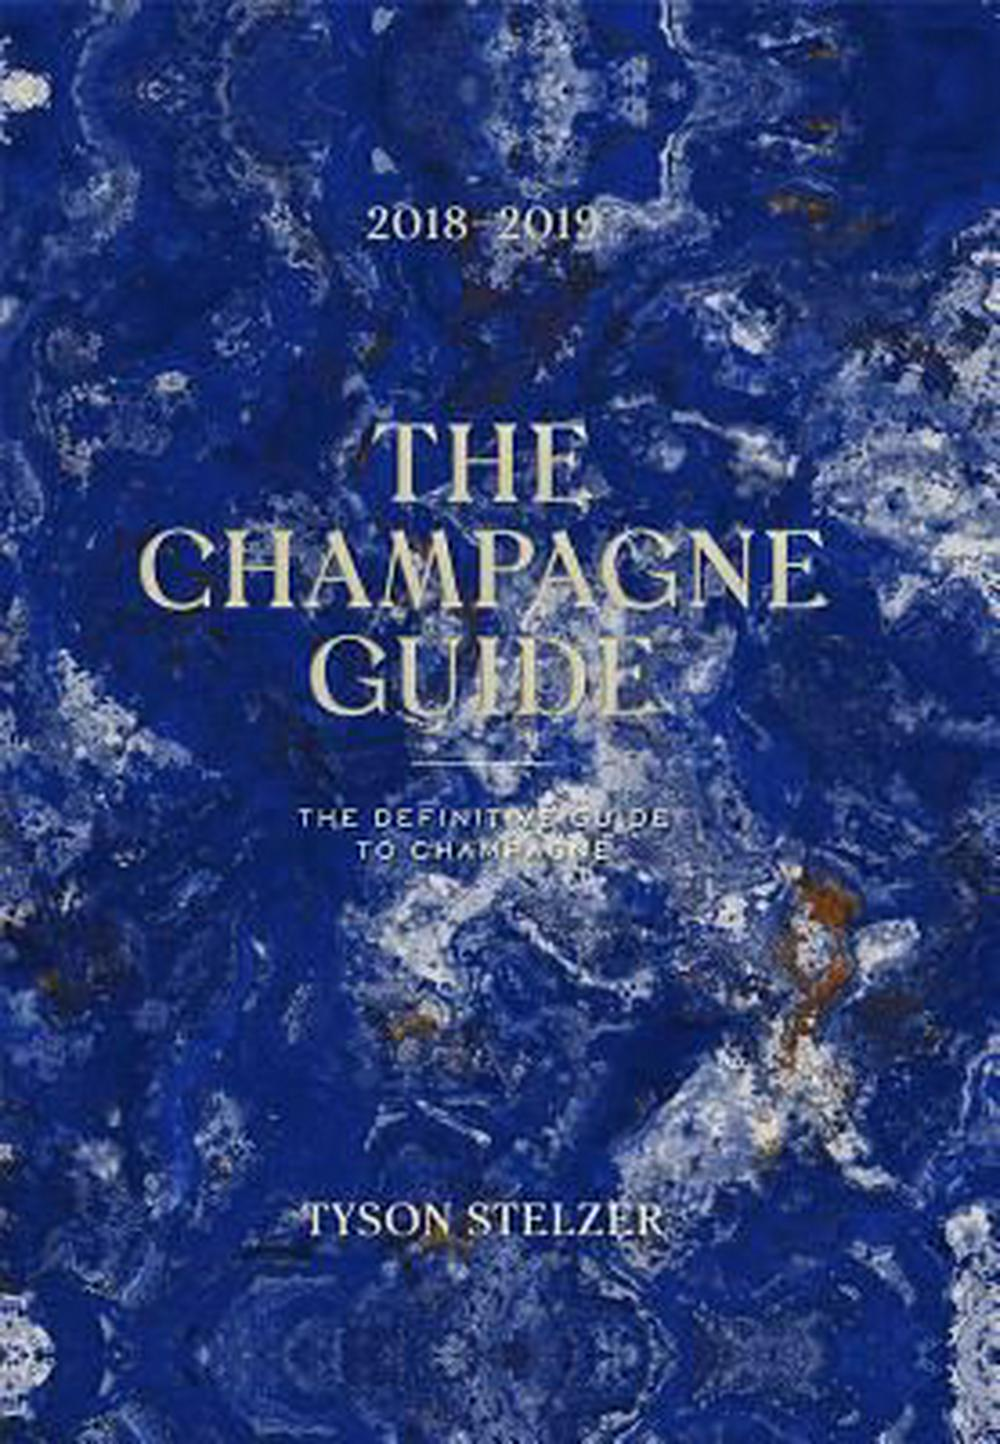 The Champagne Guide 2018-2019: The Definitive Guide to Champagne by Tyson Stelzer, ISBN: 9781743793183